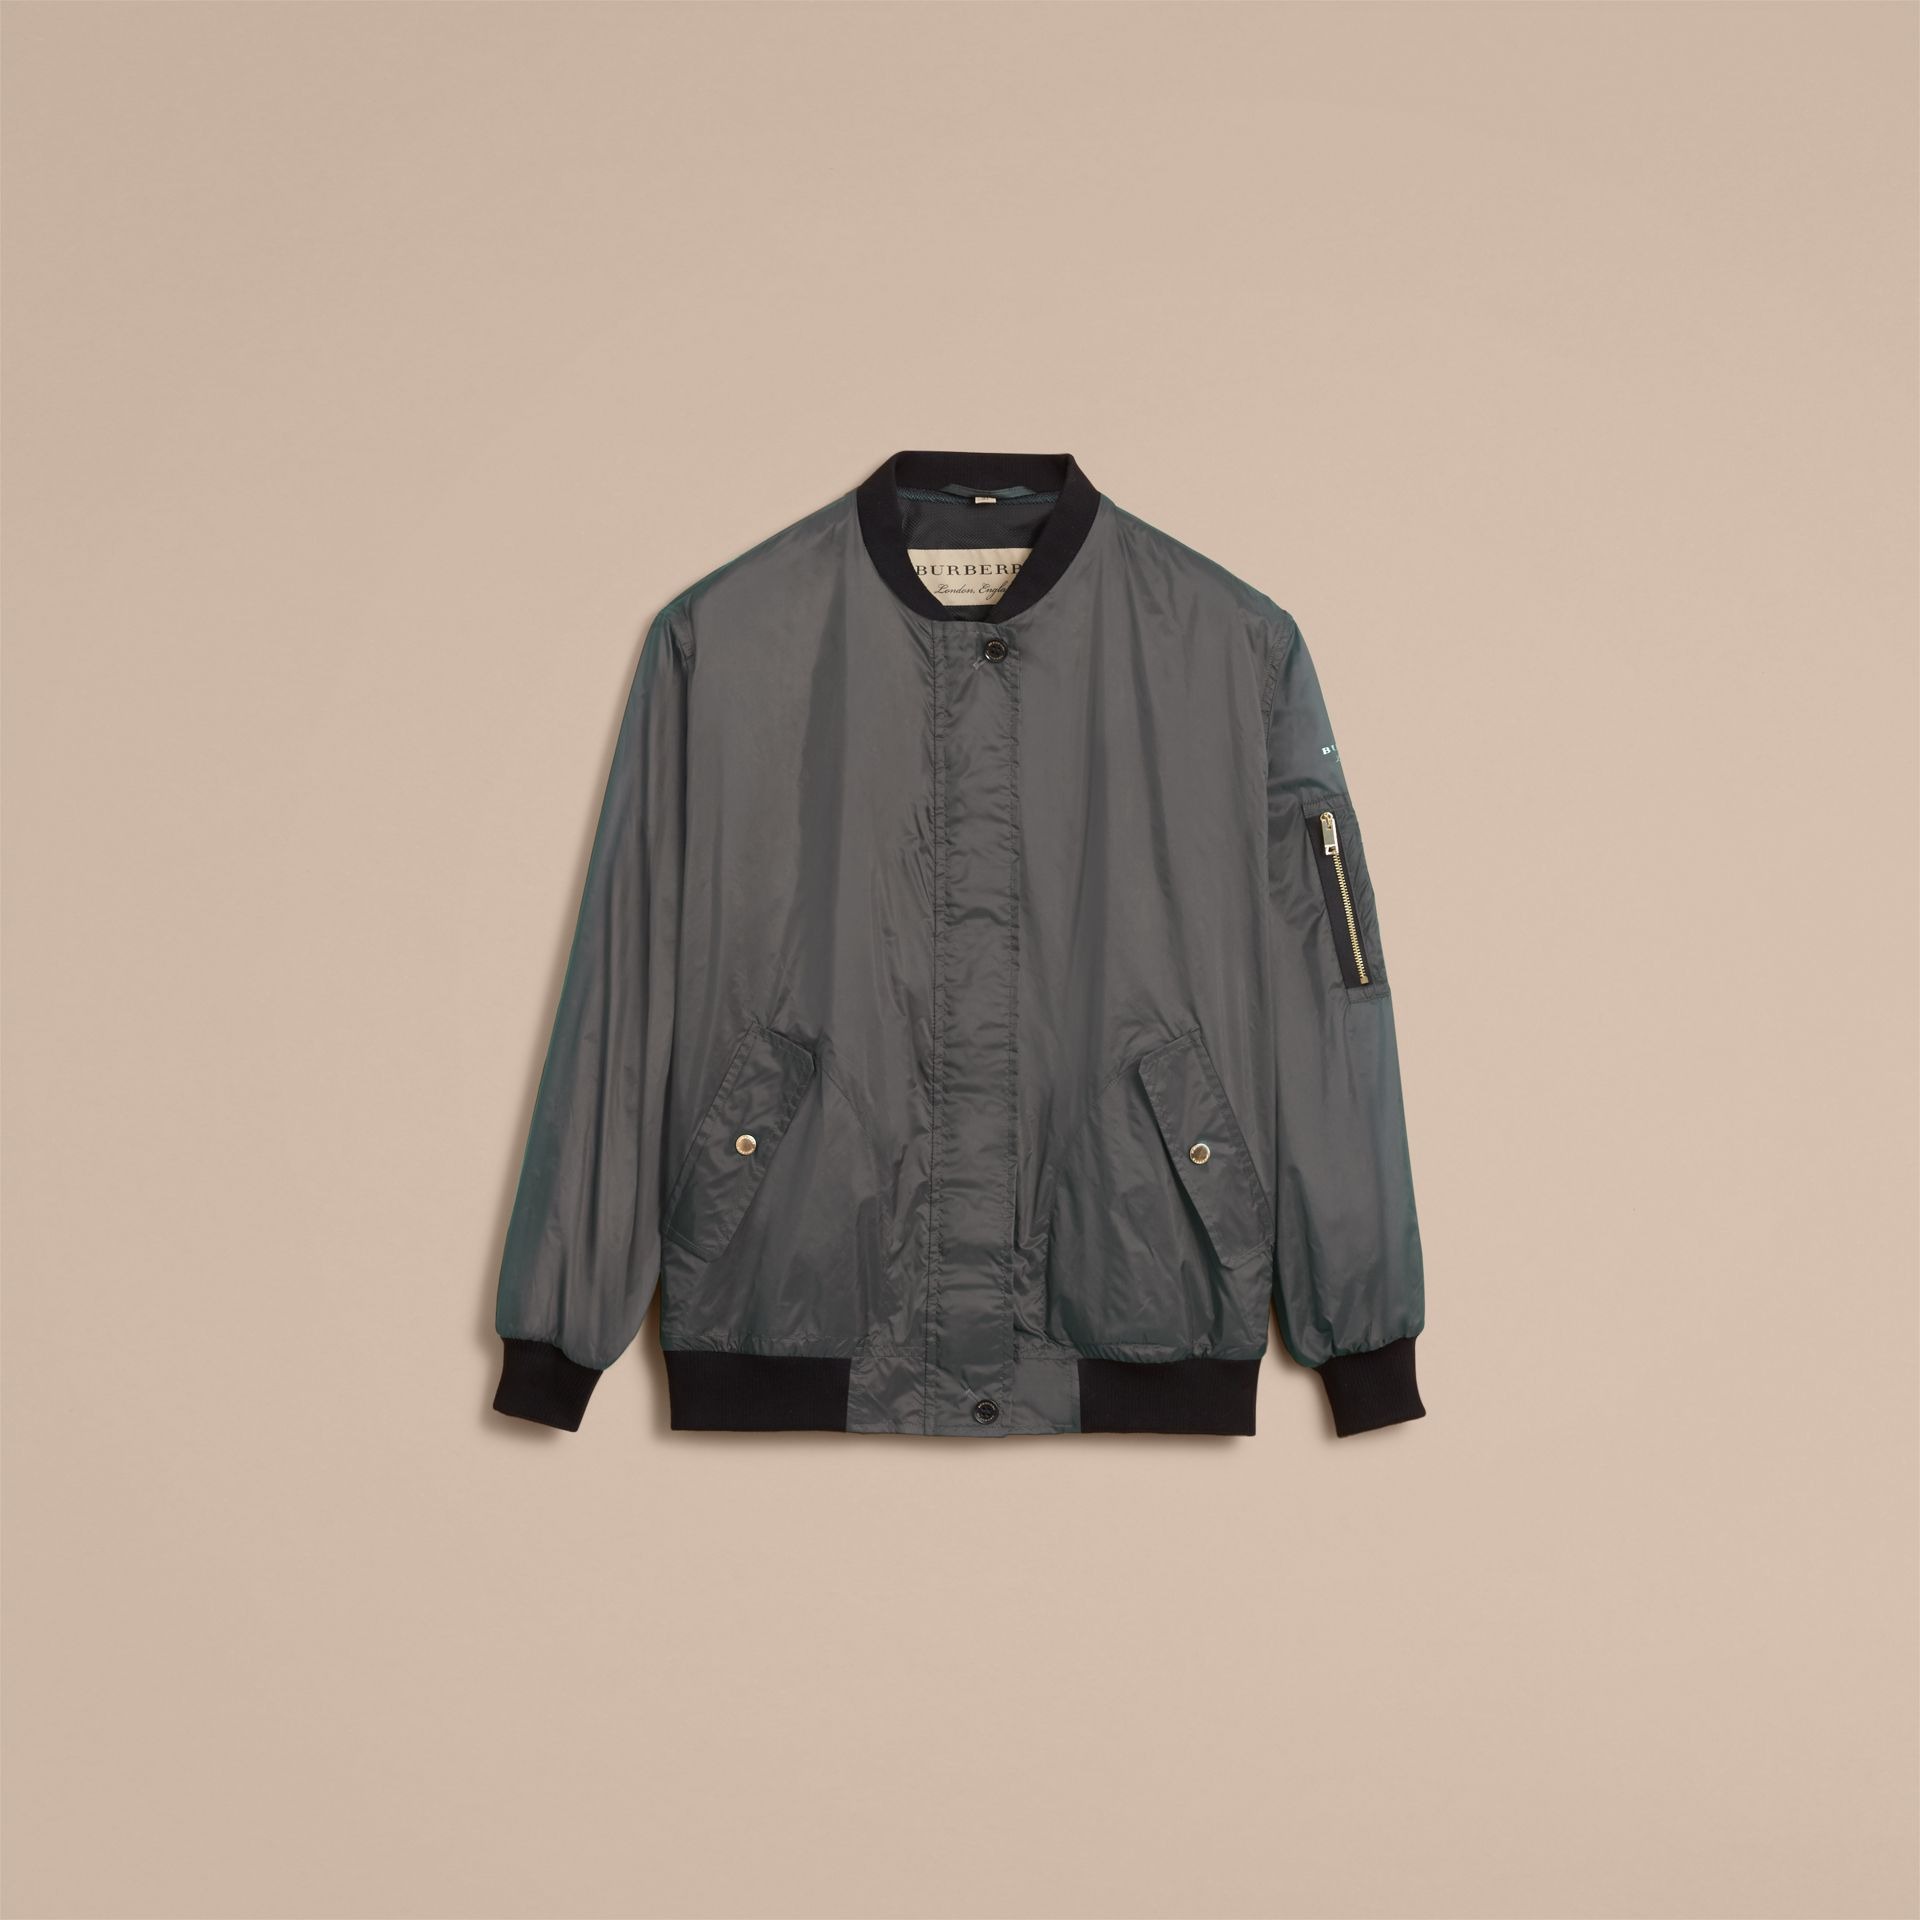 Lightweight Bomber Jacket in Vintage Green - Women | Burberry - gallery image 4